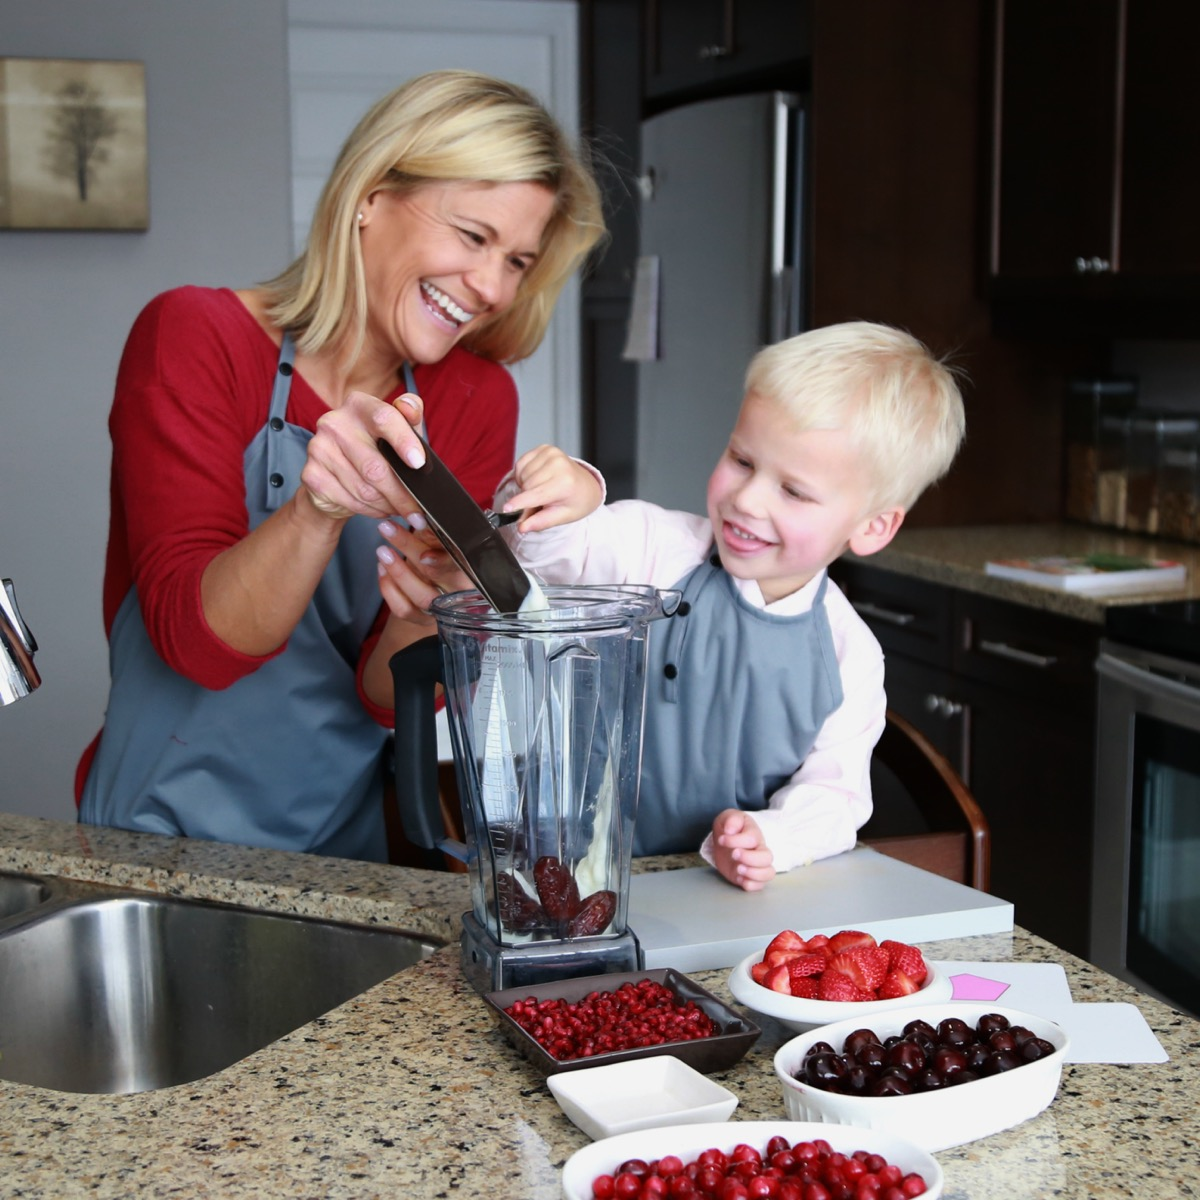 Son and Mom in the Kitchen